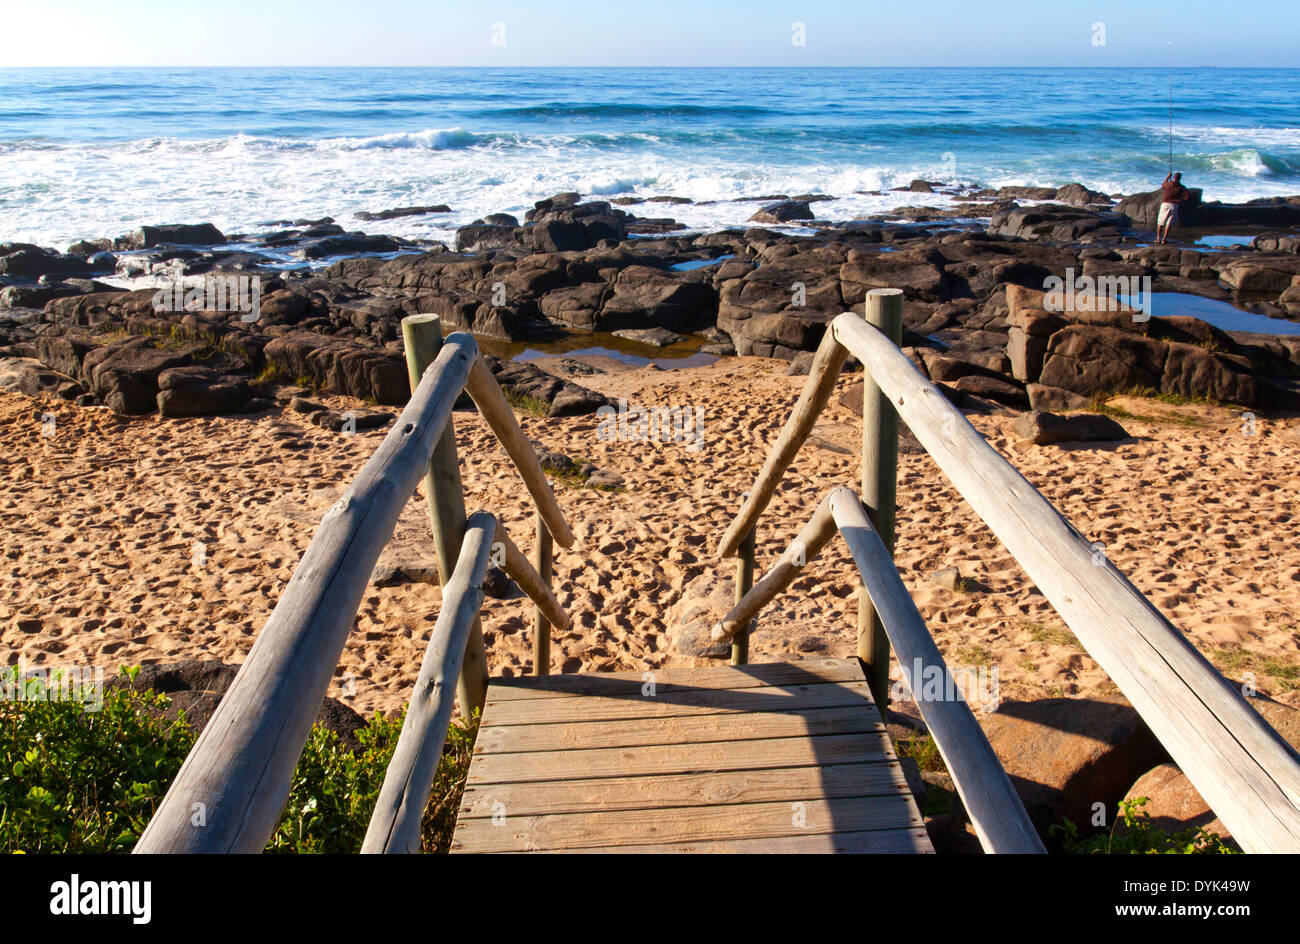 weathered wooden stairway leading onto rocky beach - Stock Image